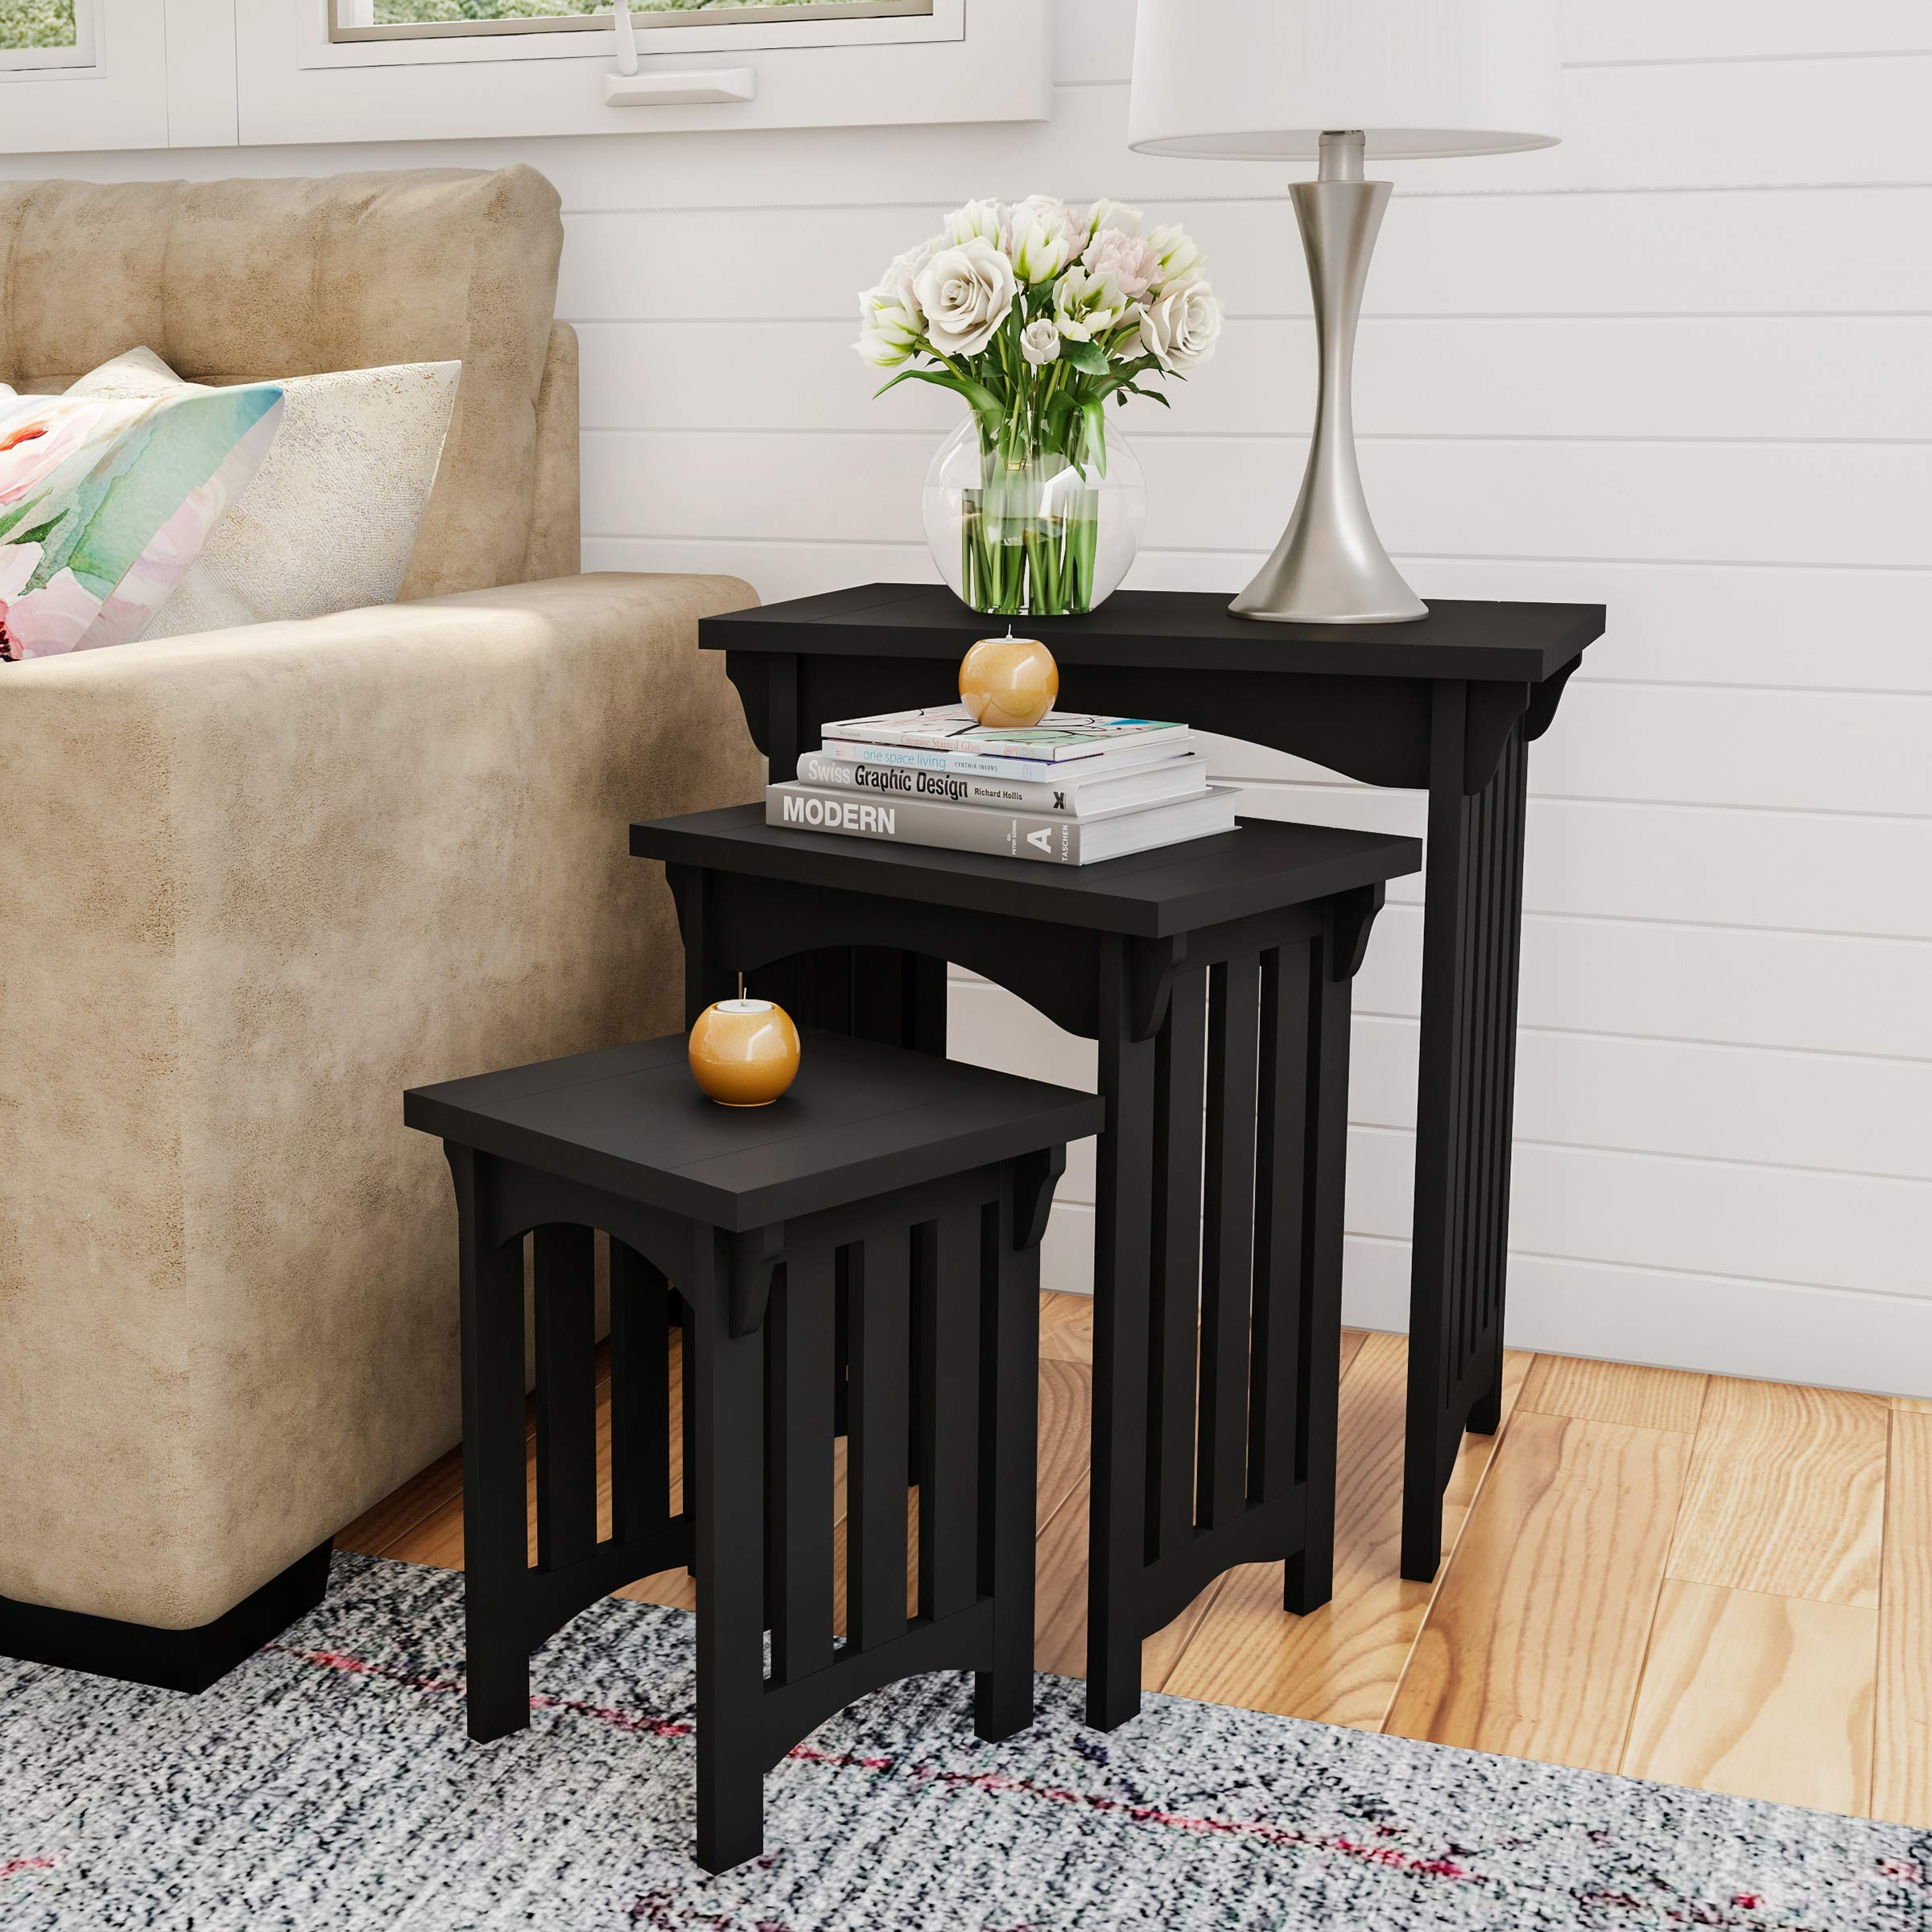 Home 80-FNT-3 Lavish Nesting Set of 3, Traditional with Mission Style Legs for Living Room Coffee Tables or Nightstands Accent Furniture (Black) by HOME